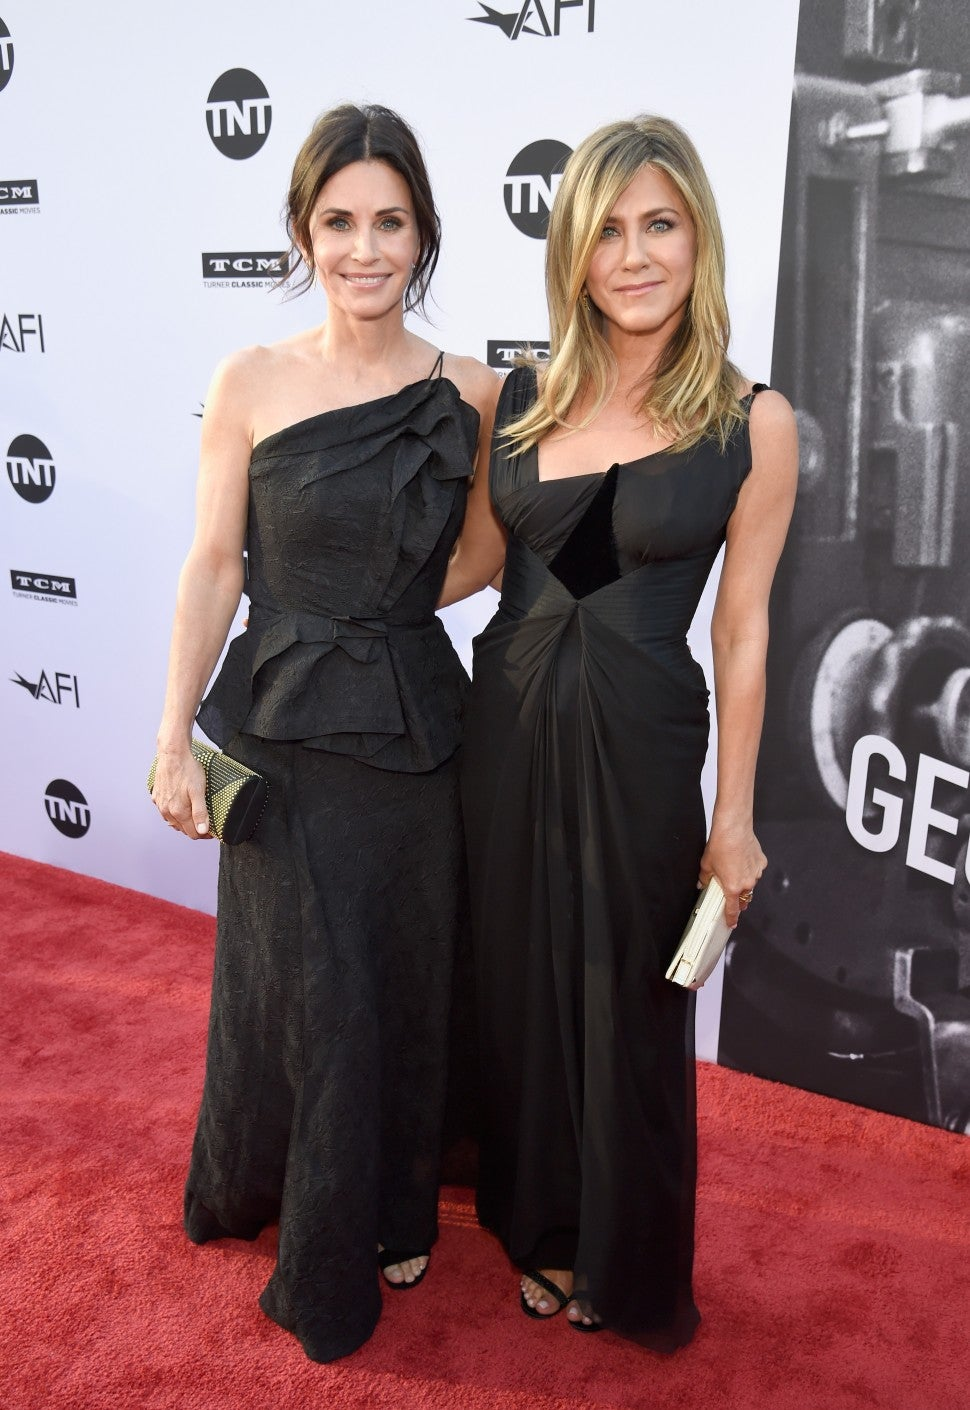 Courteney Cox and Jennifer Aniston attend the   American Film Institute's 46th Life Achievement Award Gala on June 7, 2018 in Hollywood, California.